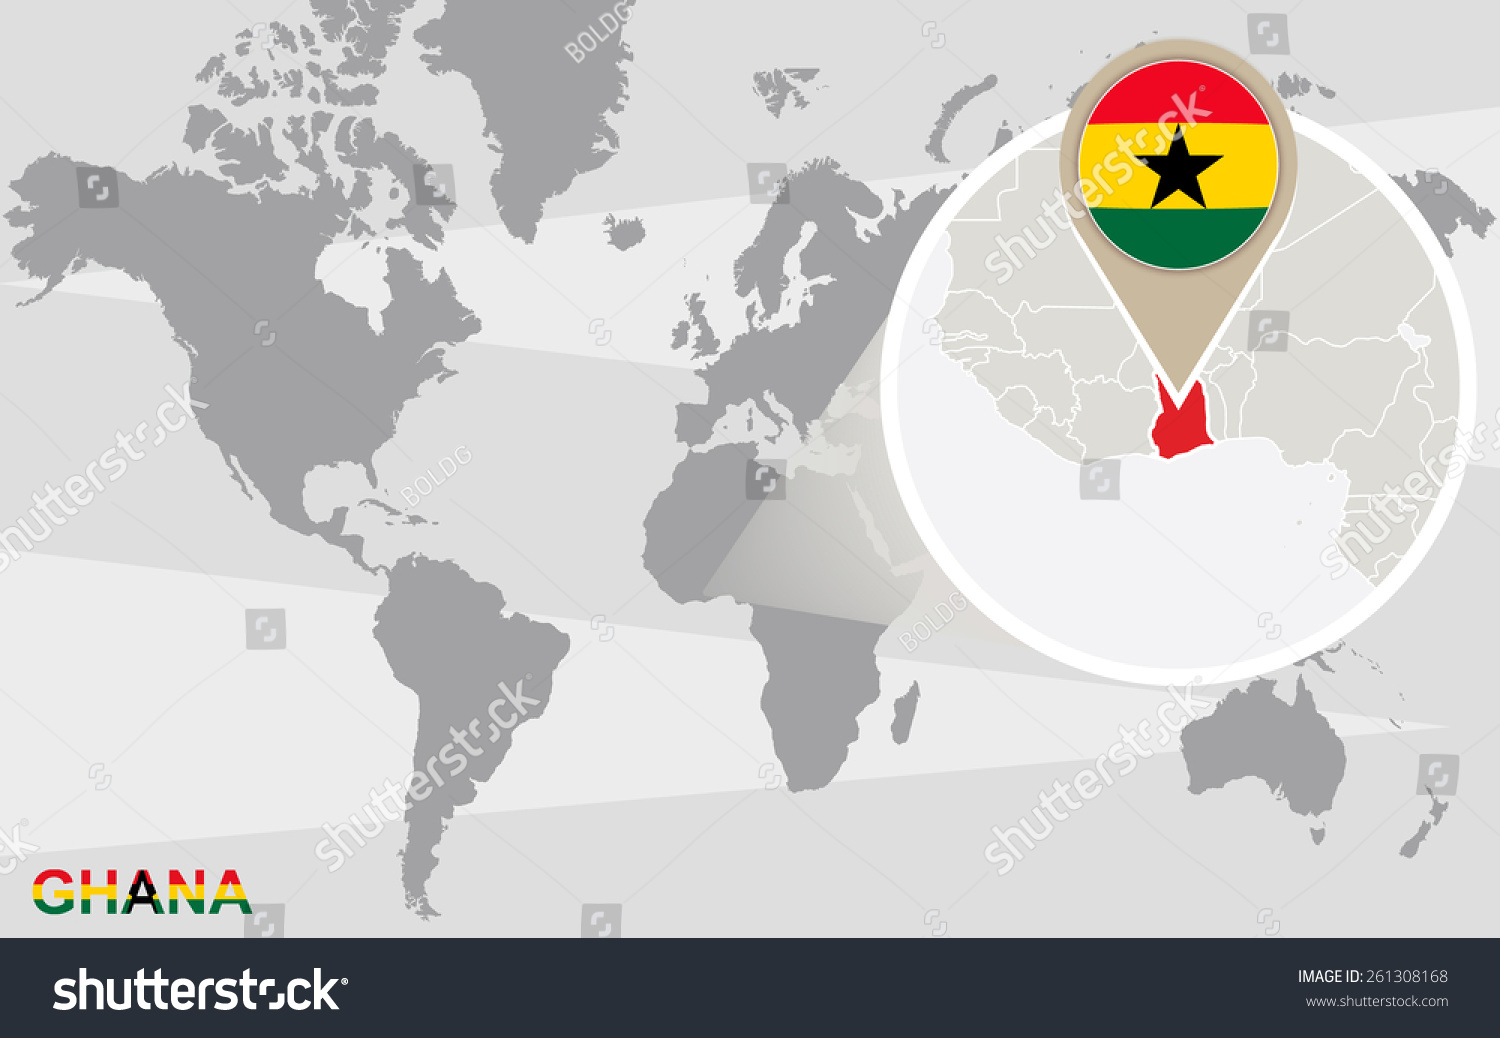 Ghana On A World Map.World Map Magnified Ghana Ghana Flag Stock Vector Royalty Free